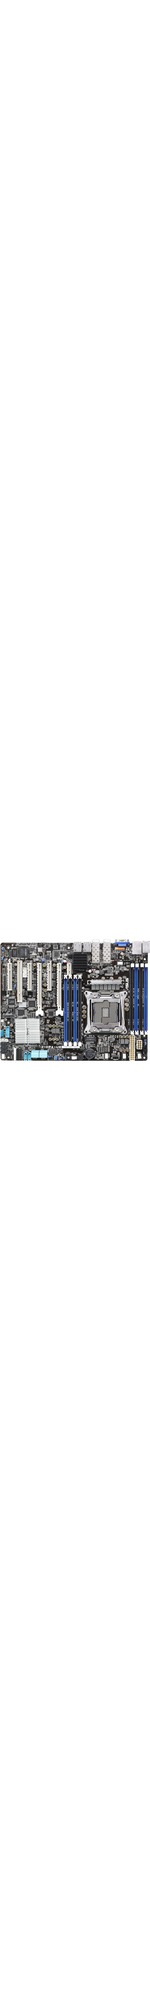 Asus Z10PA-U8/10G-2S Server Motherboard - Intel C612 Chipset - Socket LGA 2011-v3 - ATX - 1 x Processor Support - 512 GB DDR4 SDRAM Maximum RAM - 2.13 GHz, 1.87 GHz,